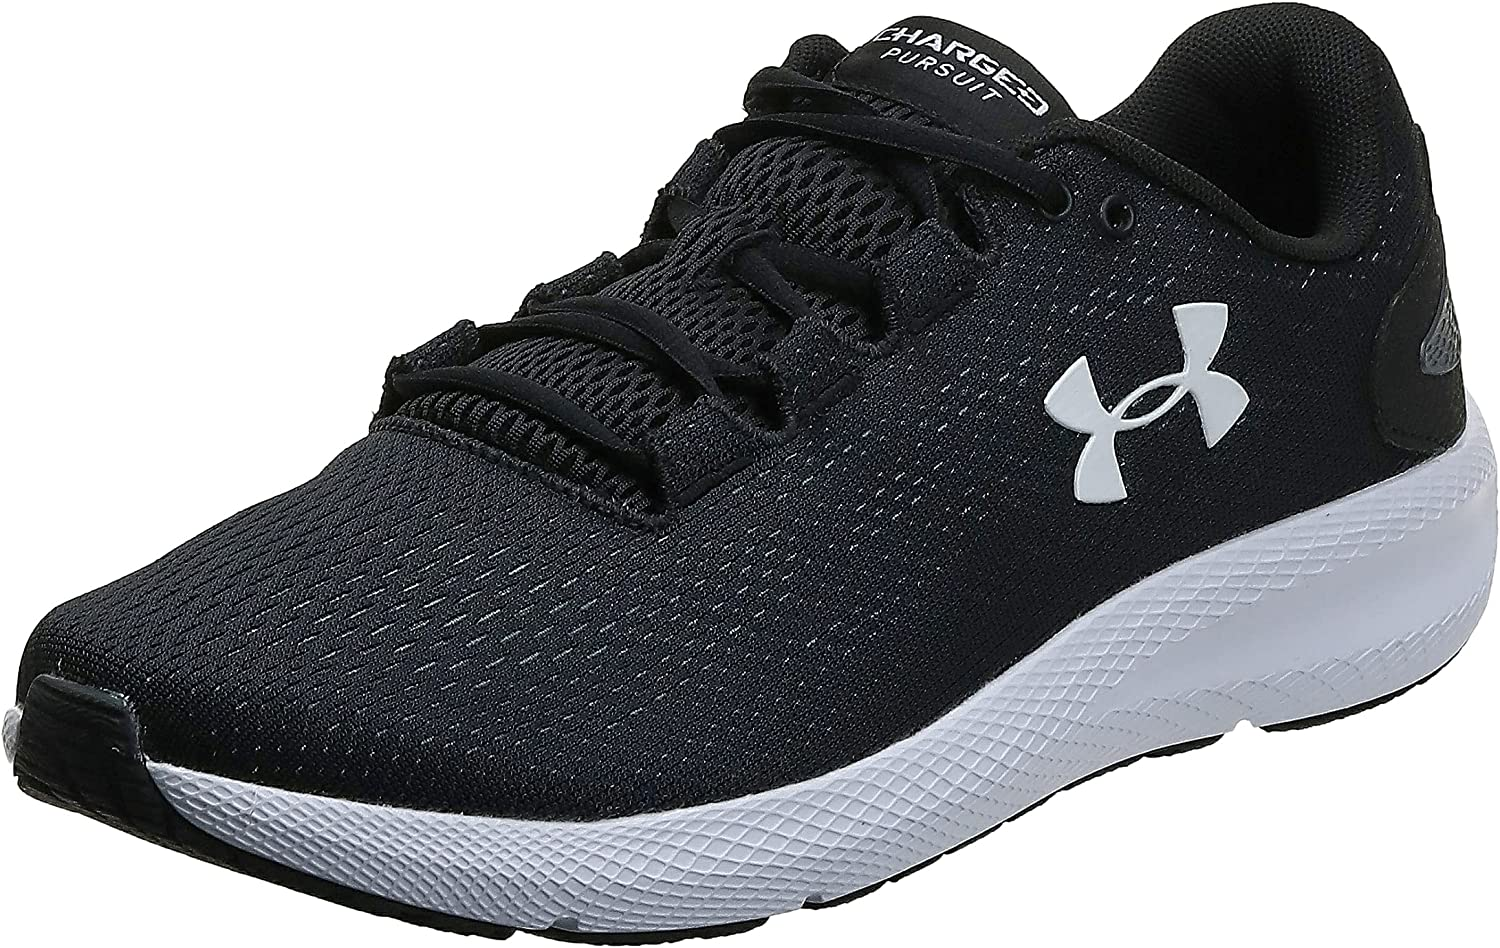 Popular popular Under Jacksonville Mall Armour Men's Charged Pursuit 2 Running Shoe 001 Black W